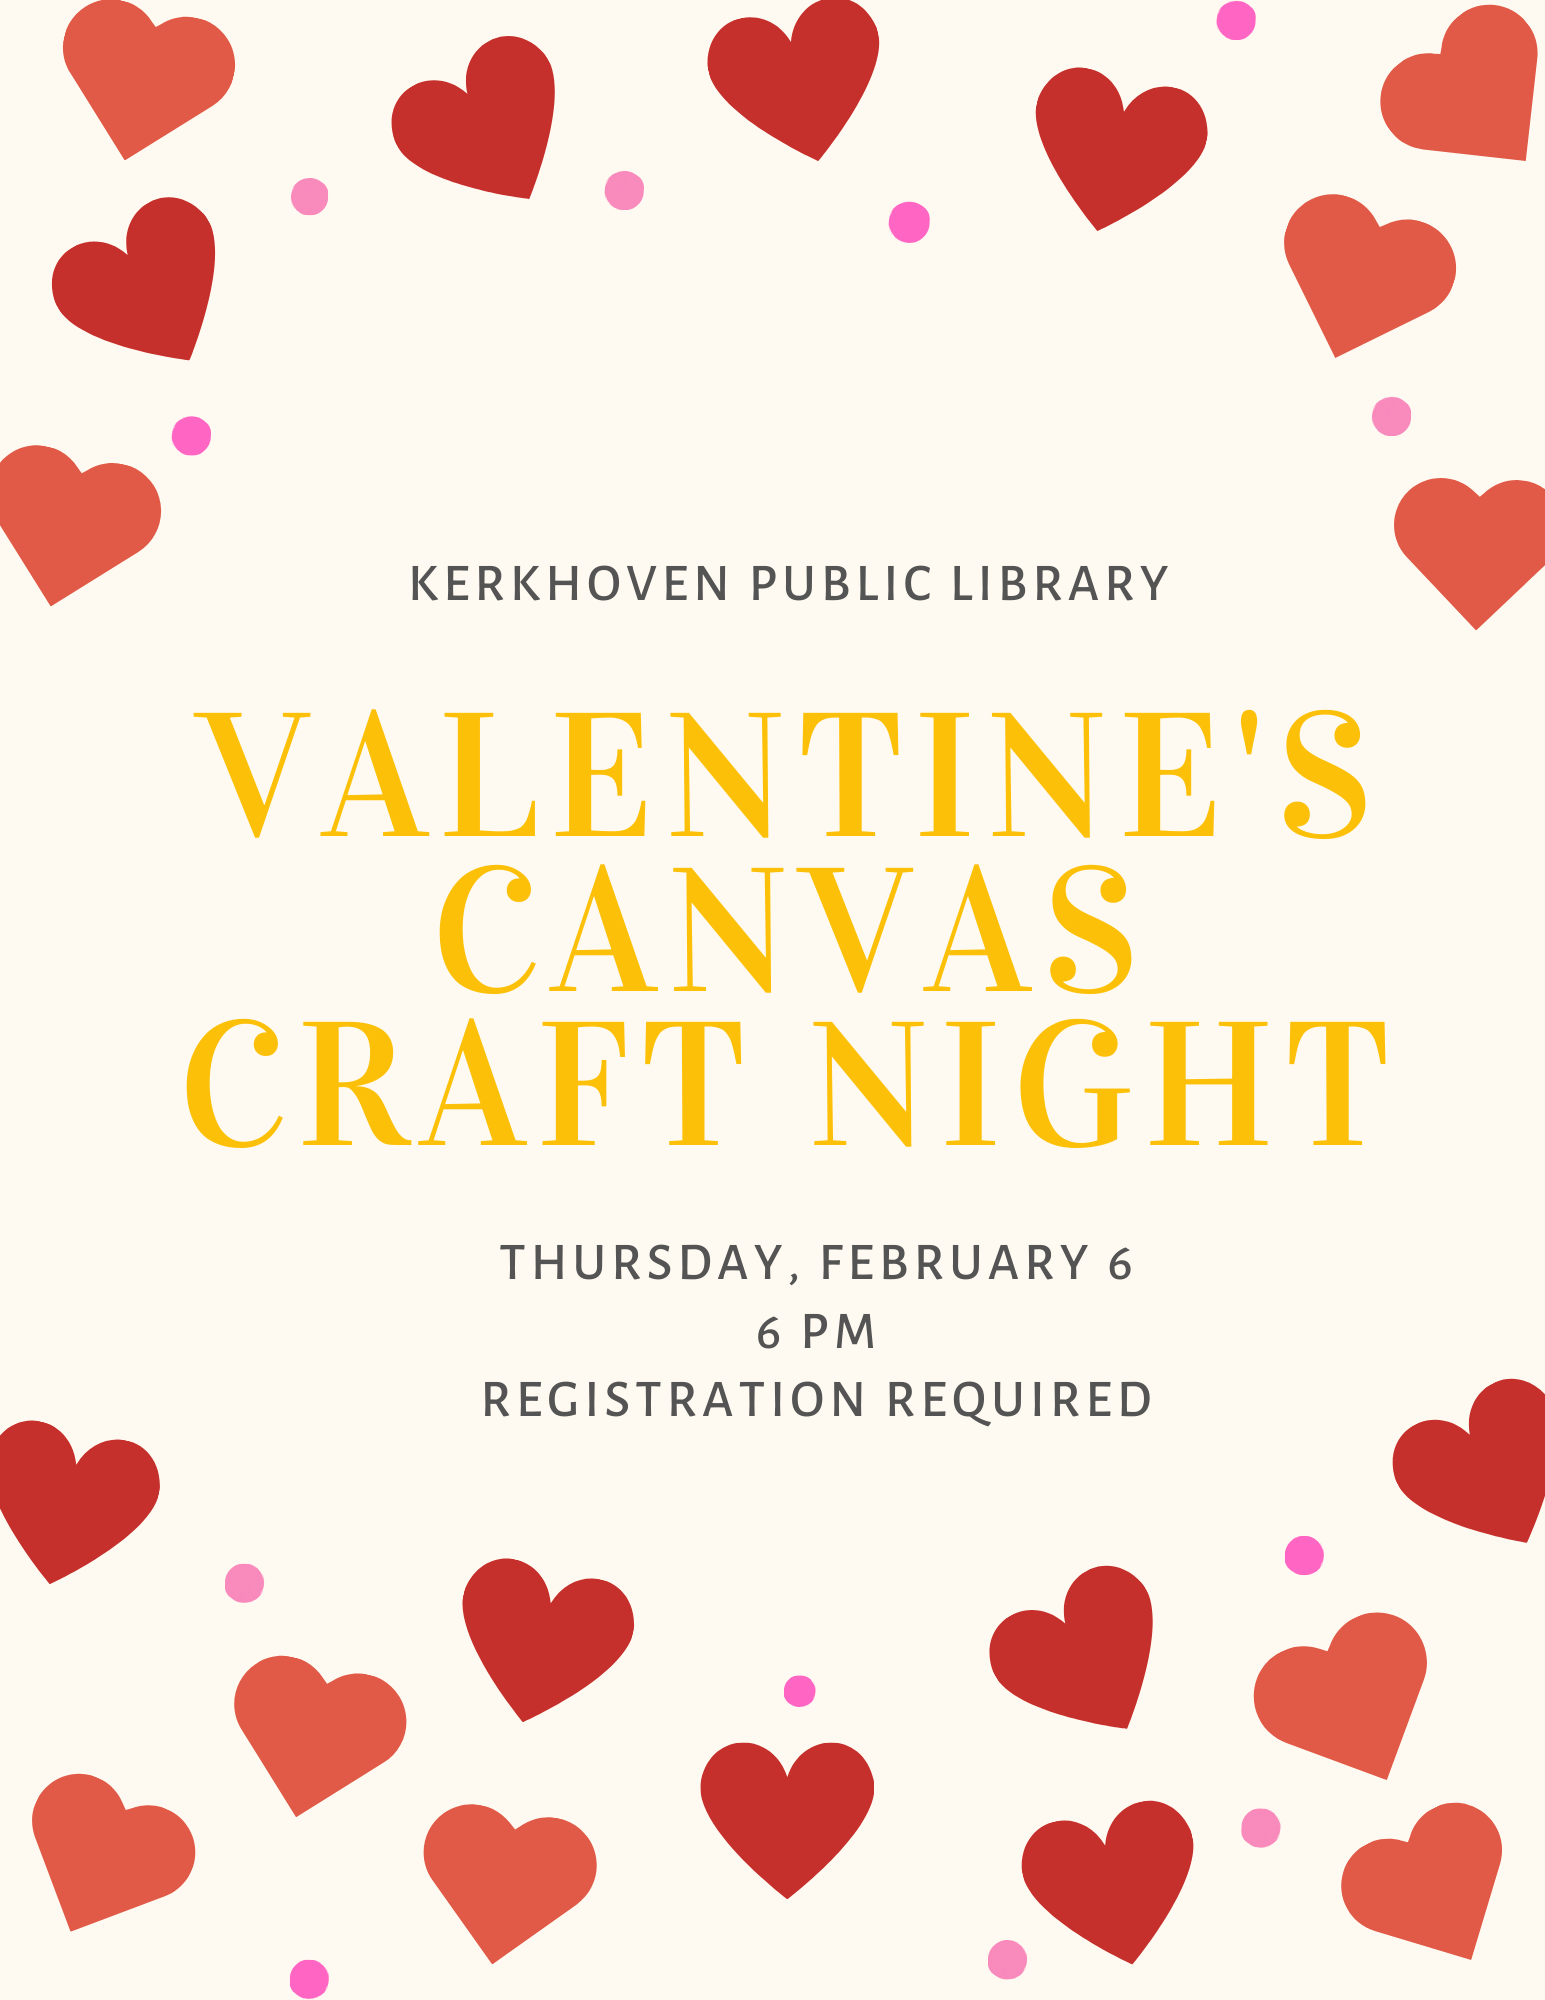 Let your creative juices flow this Valentine's Day! We will be offering a multi-media Valentine's Craft Night on Thursday, February 6 at 6 pm. Registration required.